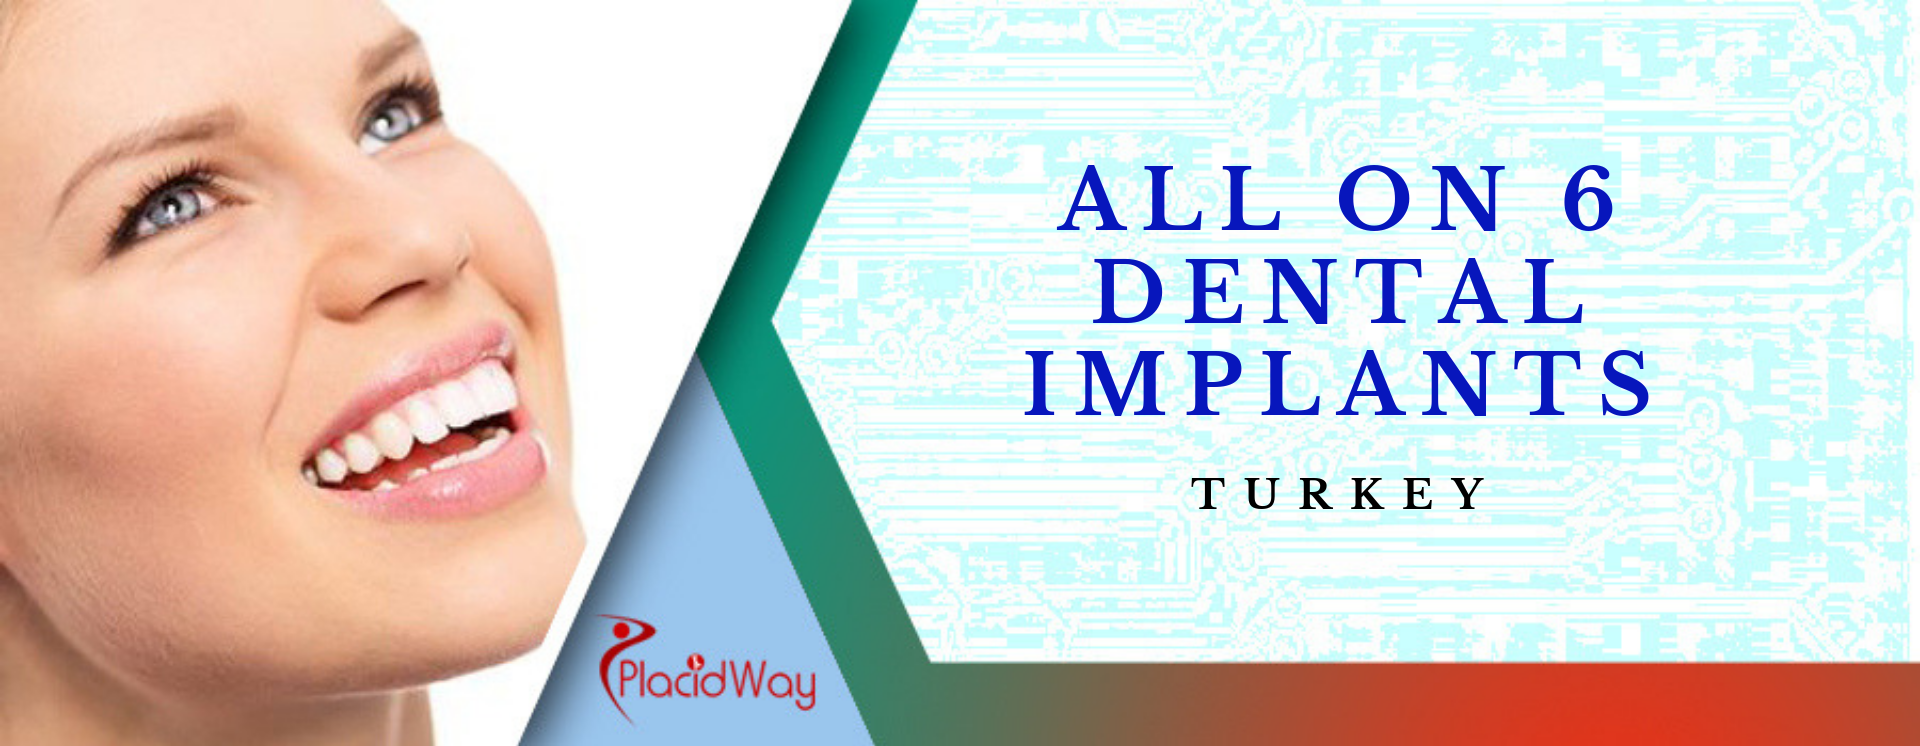 All on 6 Dental Implants in Turkey